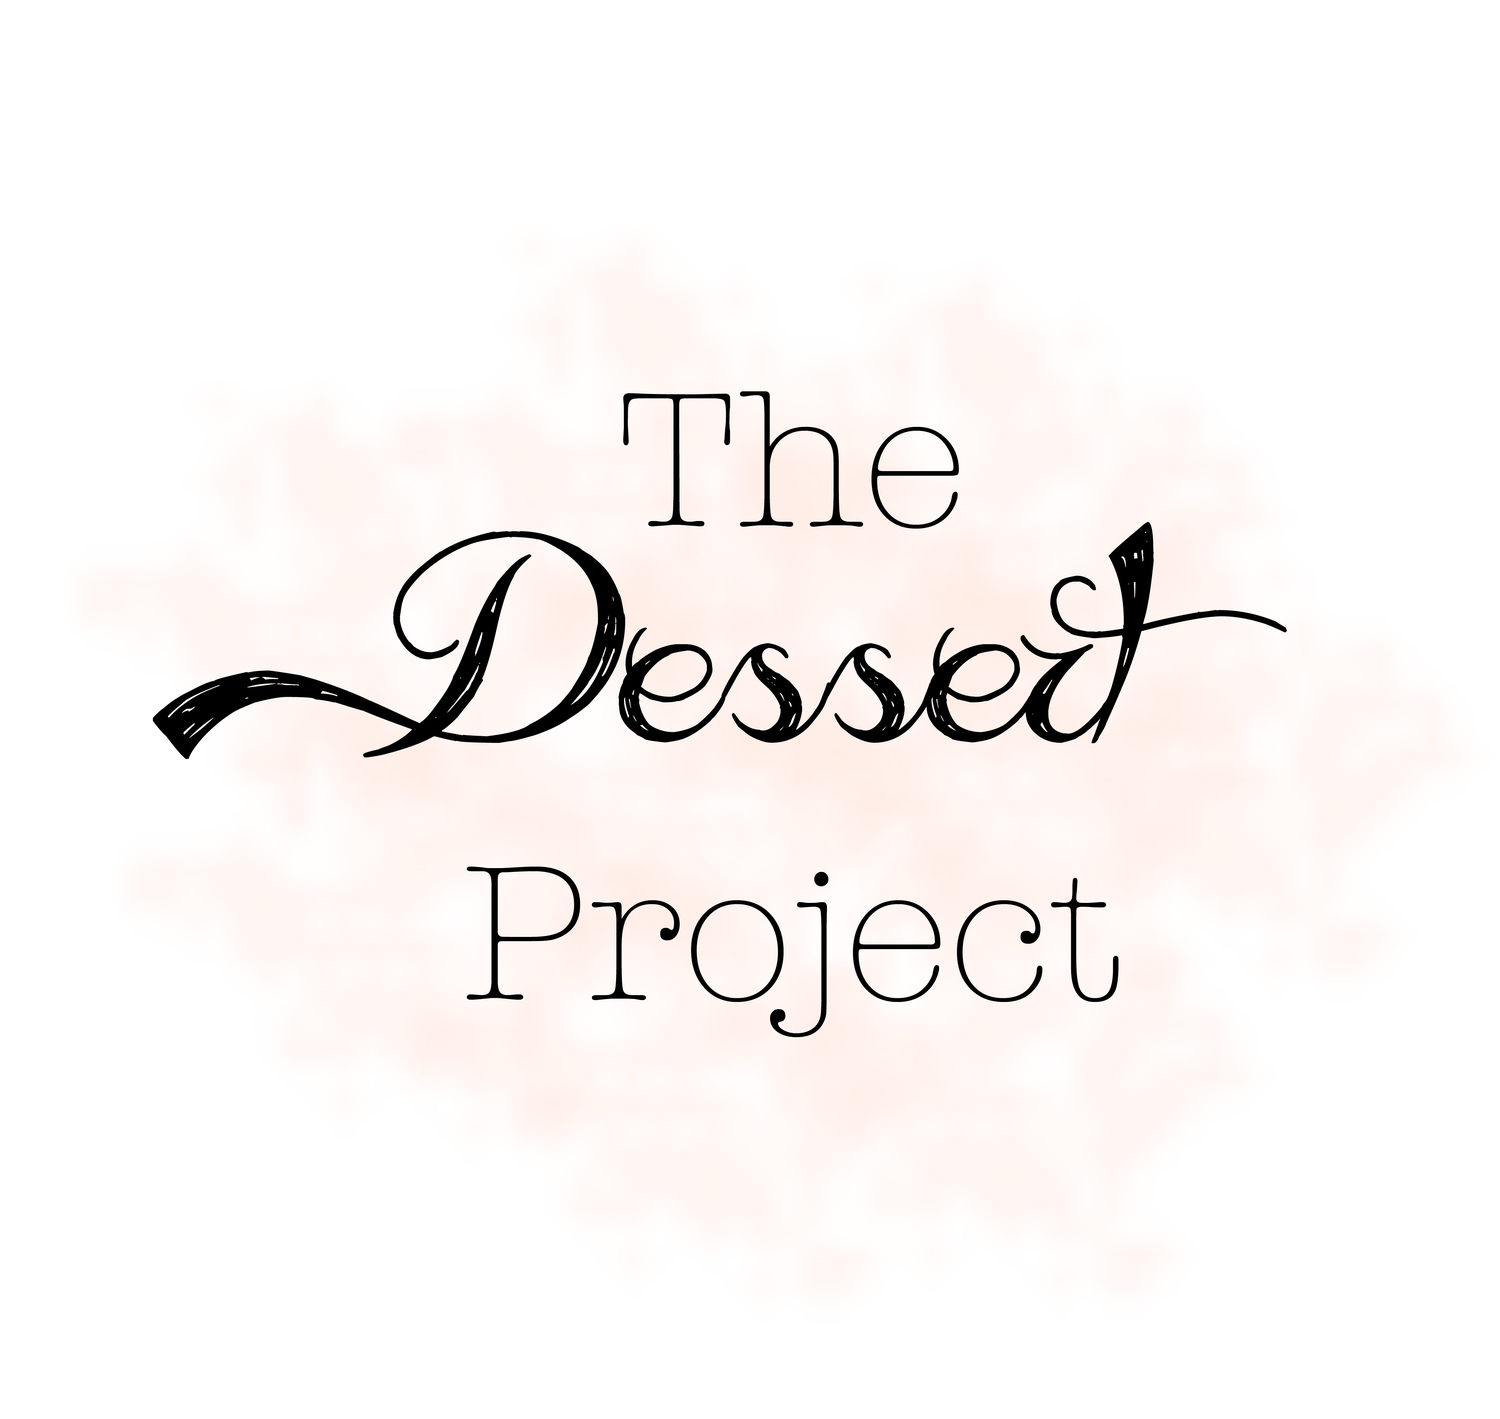 The dessert project